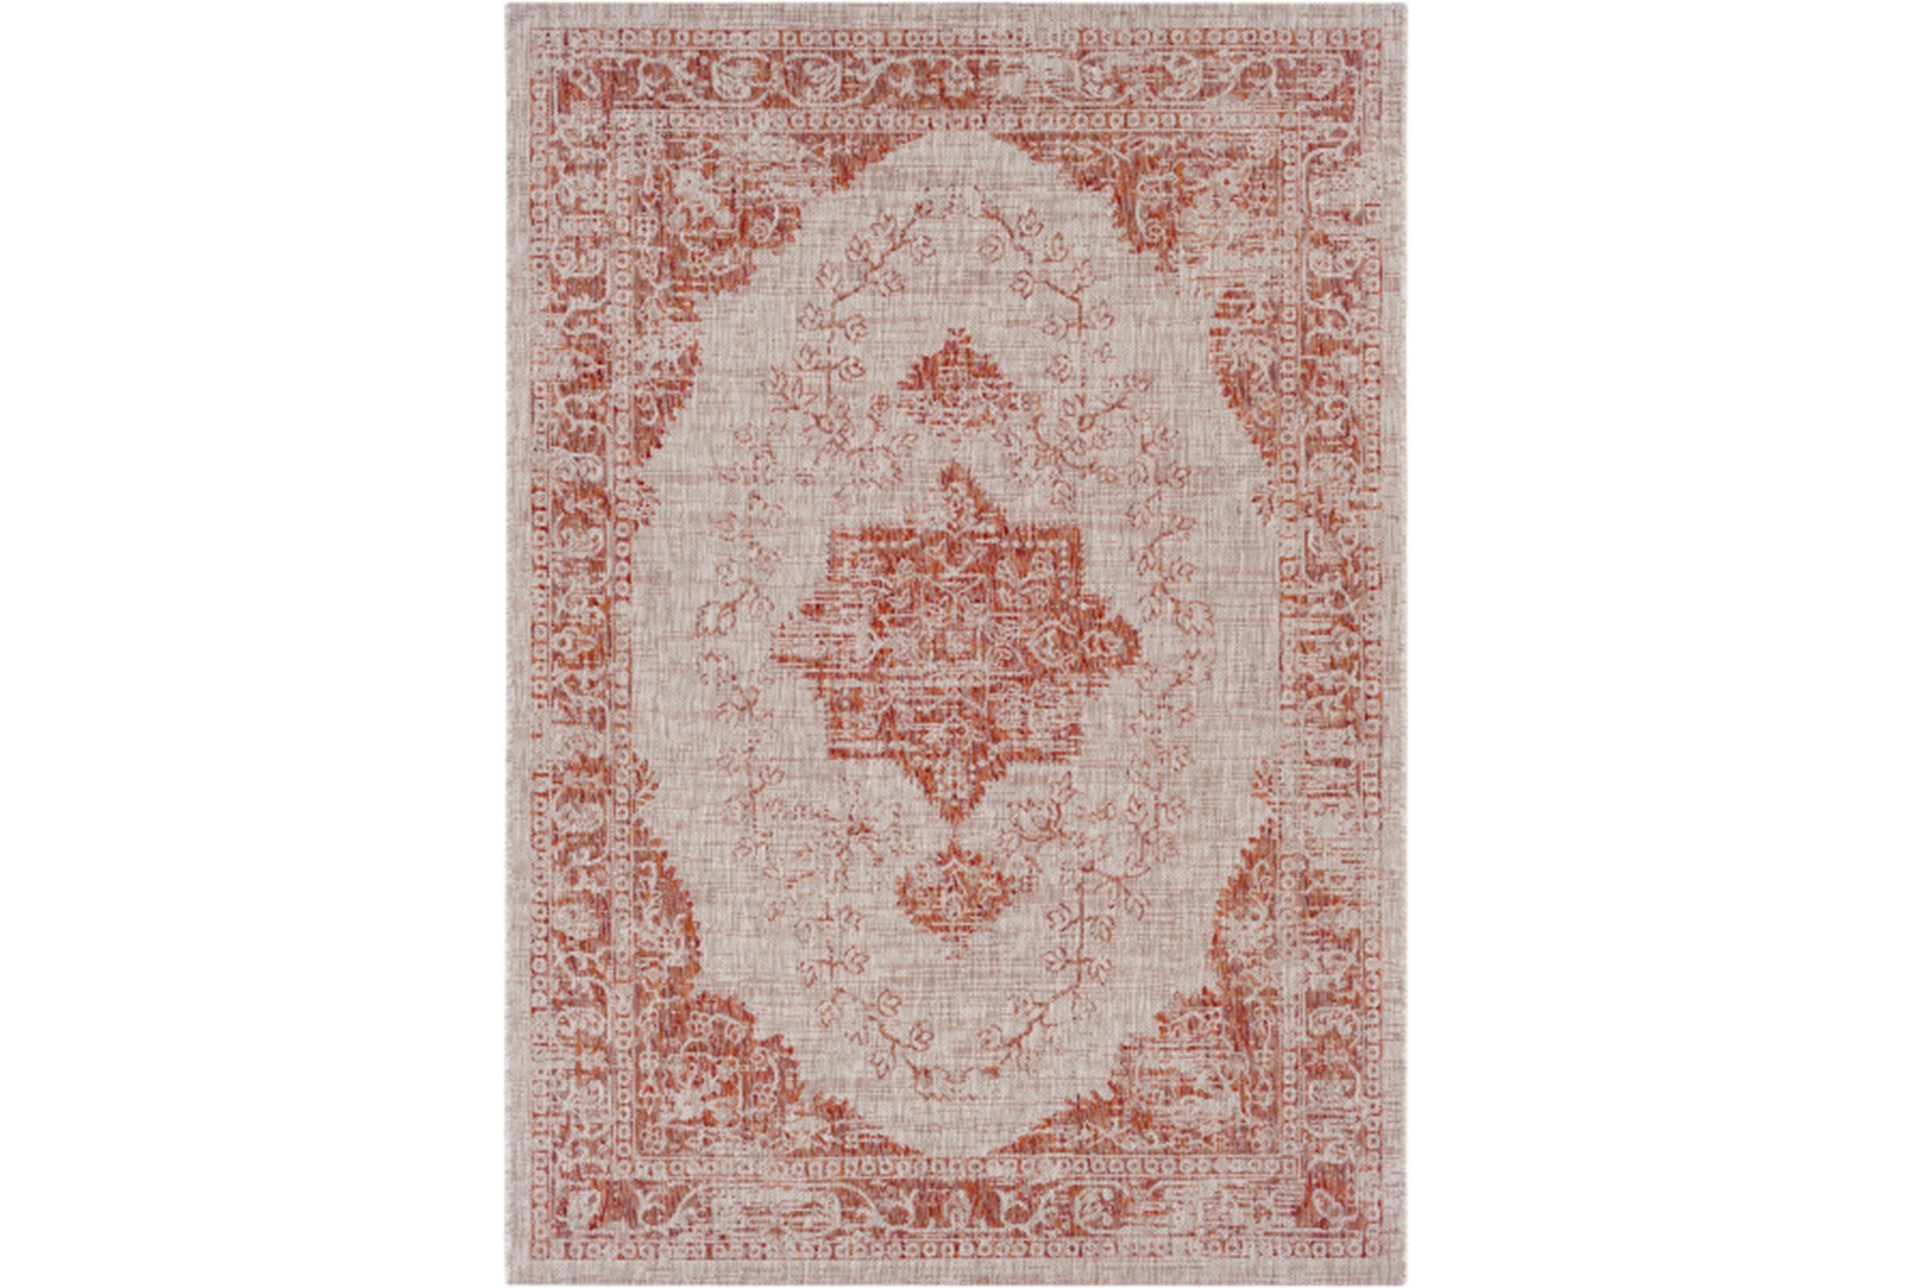 94x123 Outdoor Rug Regal Medallion Orange Qty 1 Has Been Successfully Added To Your Cart